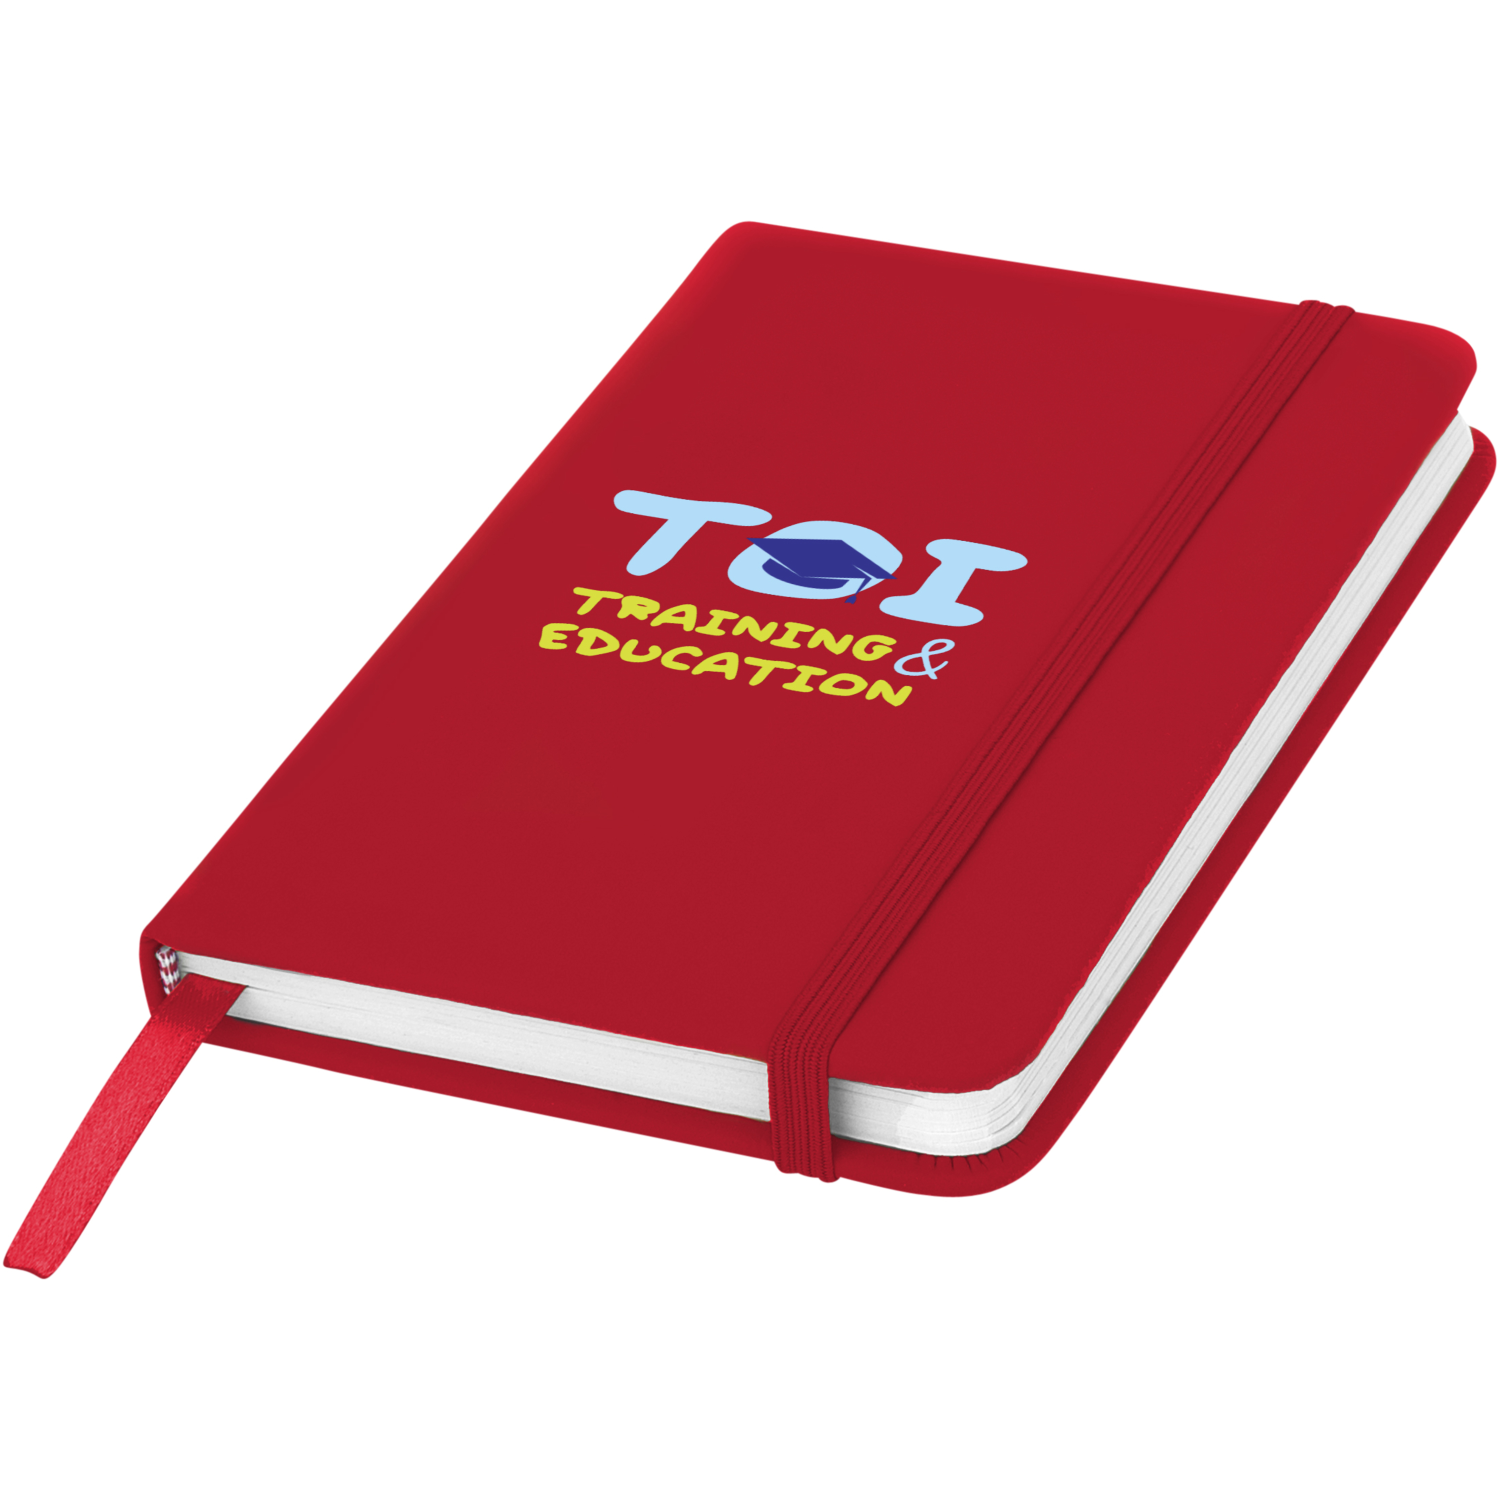 Event Hard Cover A6 Notebook